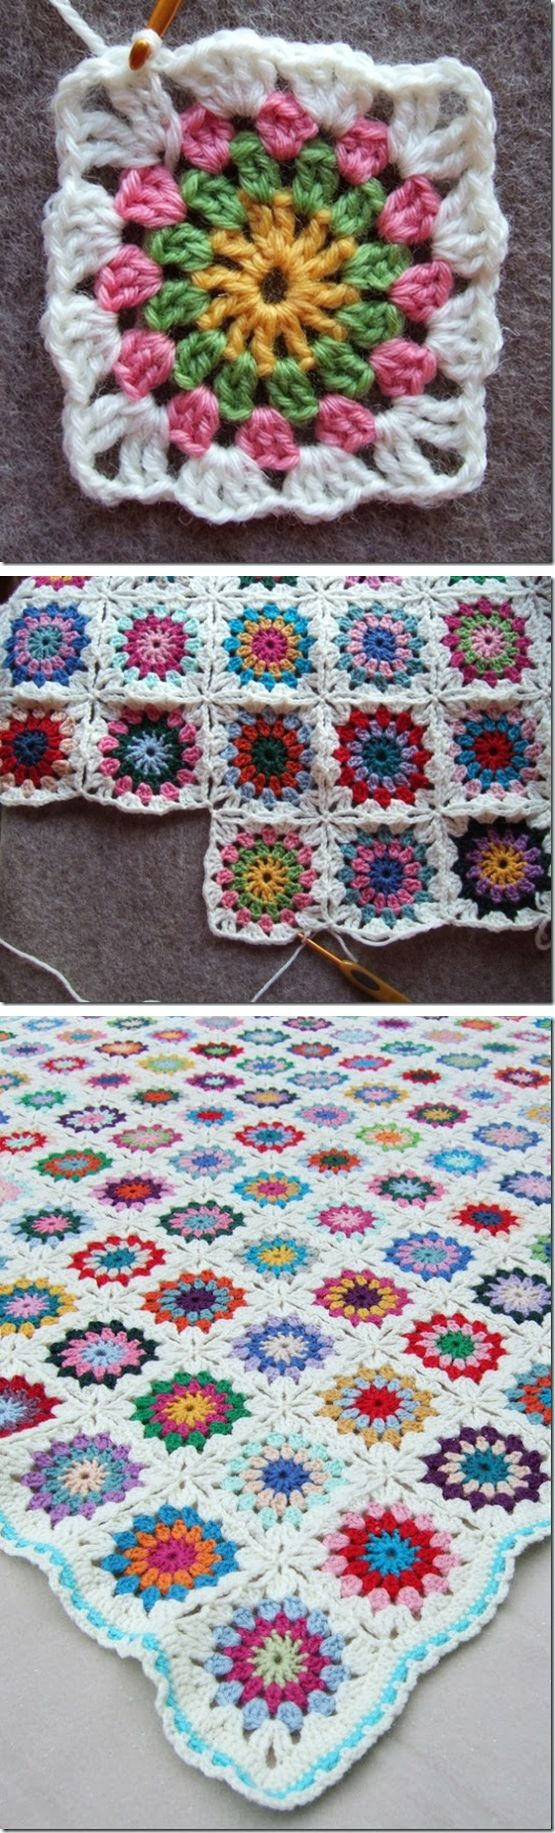 Flowers in the Snow, free pattern & photo tutorial by Solveig Grimstad.  The Ravelry Project Gallery also has over 1,000 (!) completed projects to browse for color inspiration - http://www.ravelry.com/patterns/library/flowers-in-the-snow  . . .